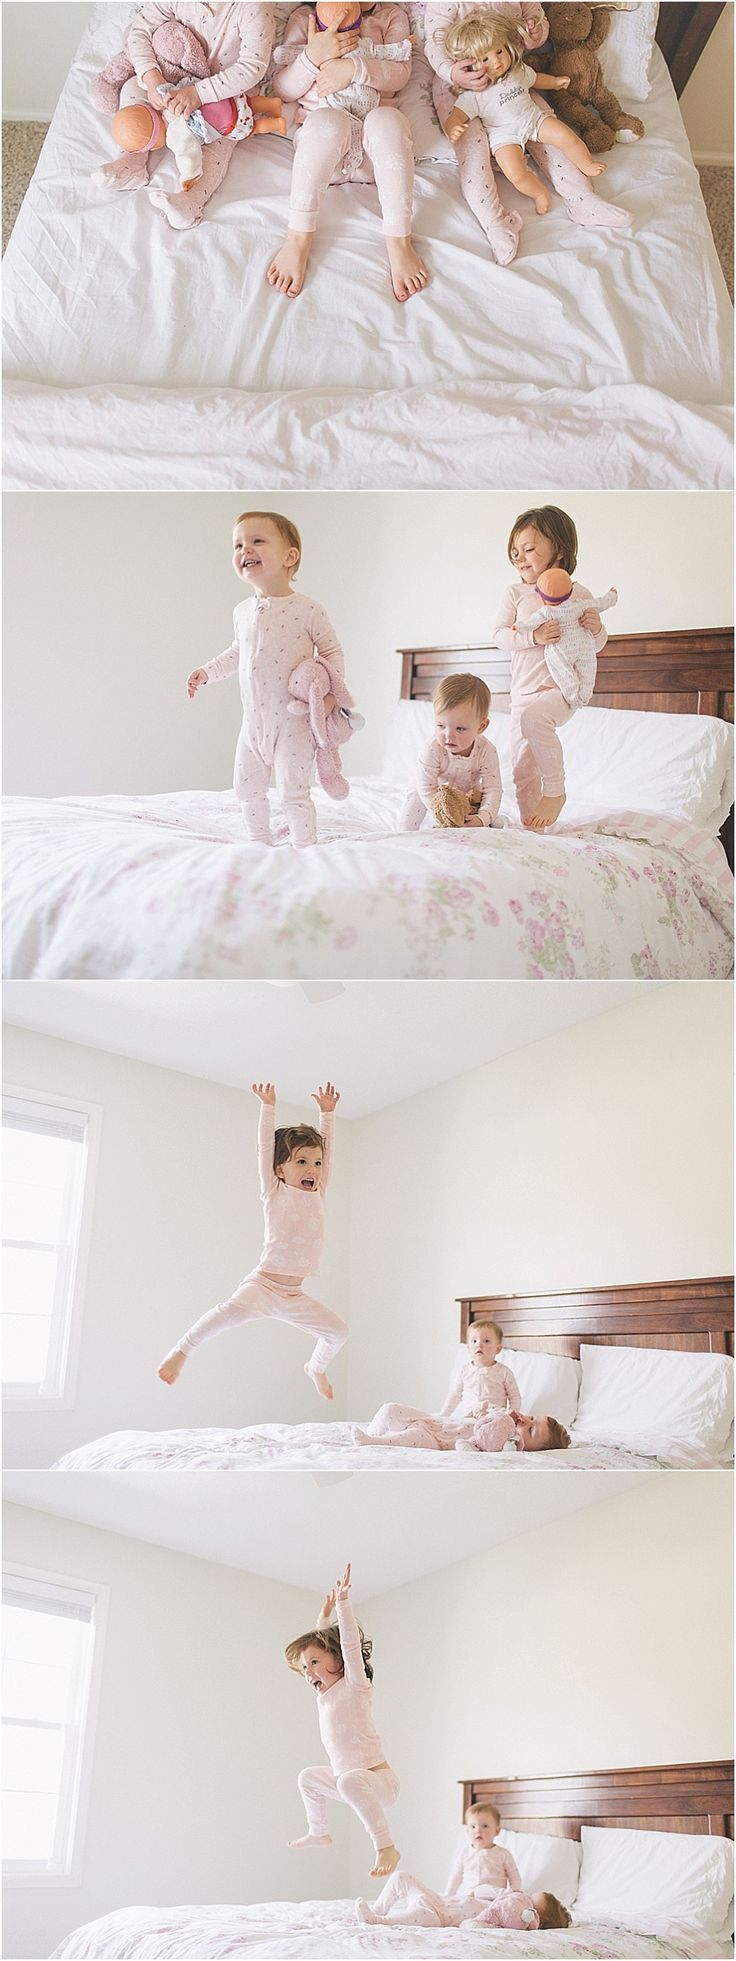 Children photography | Ideas for action photos of your family | lifestyle photos of 3 kids jumping on bed by Allison Corrin